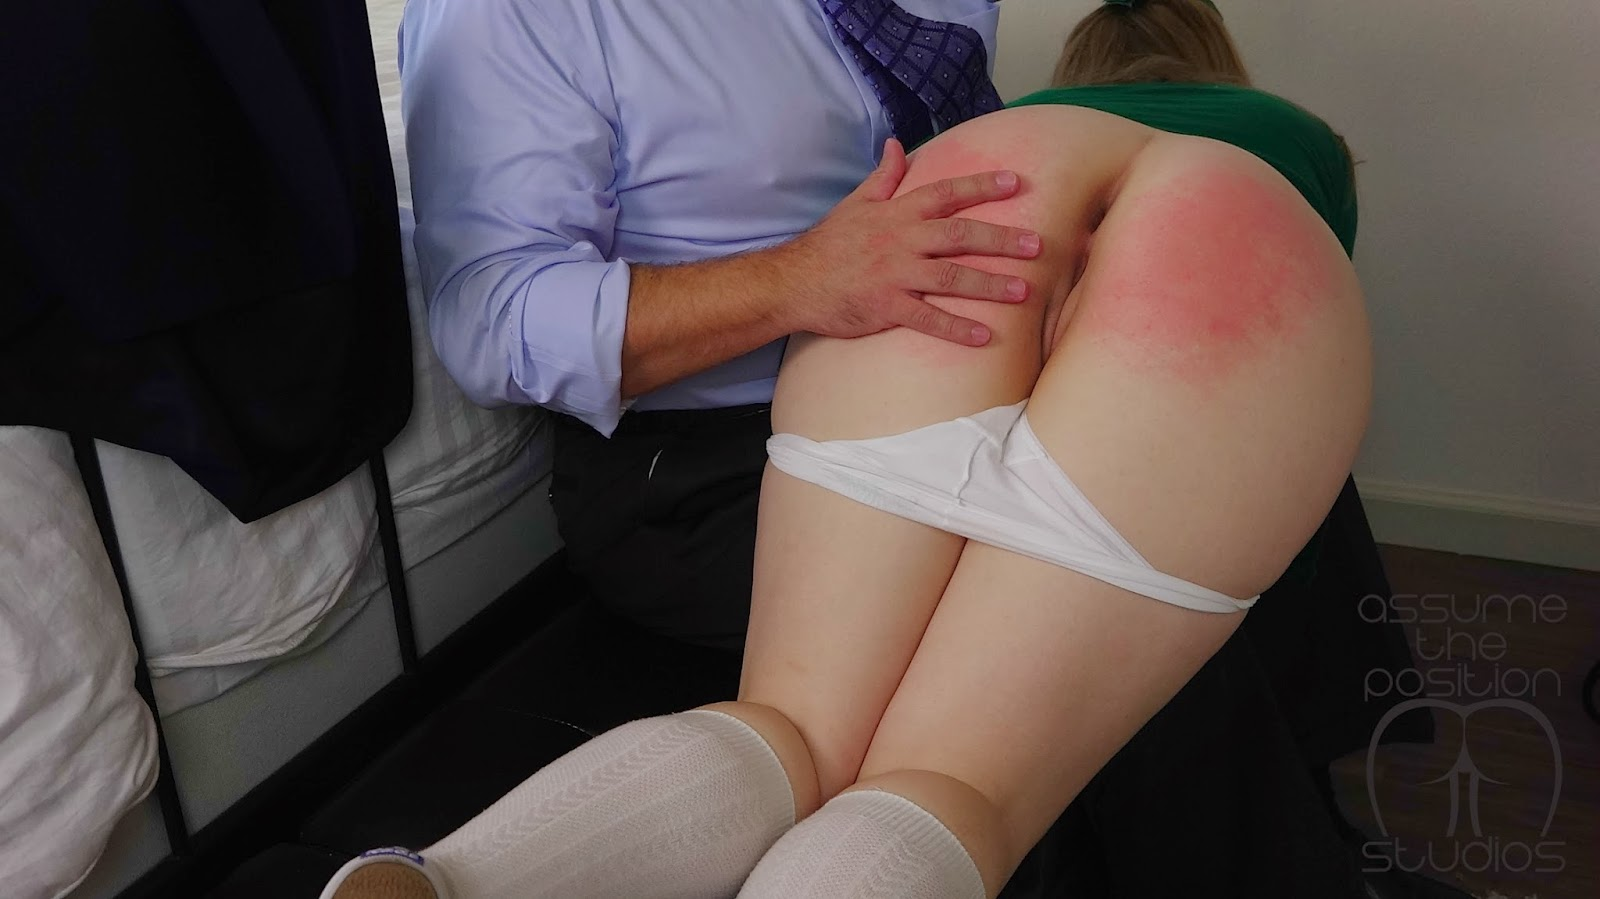 Hard Spanking During Their Wiork